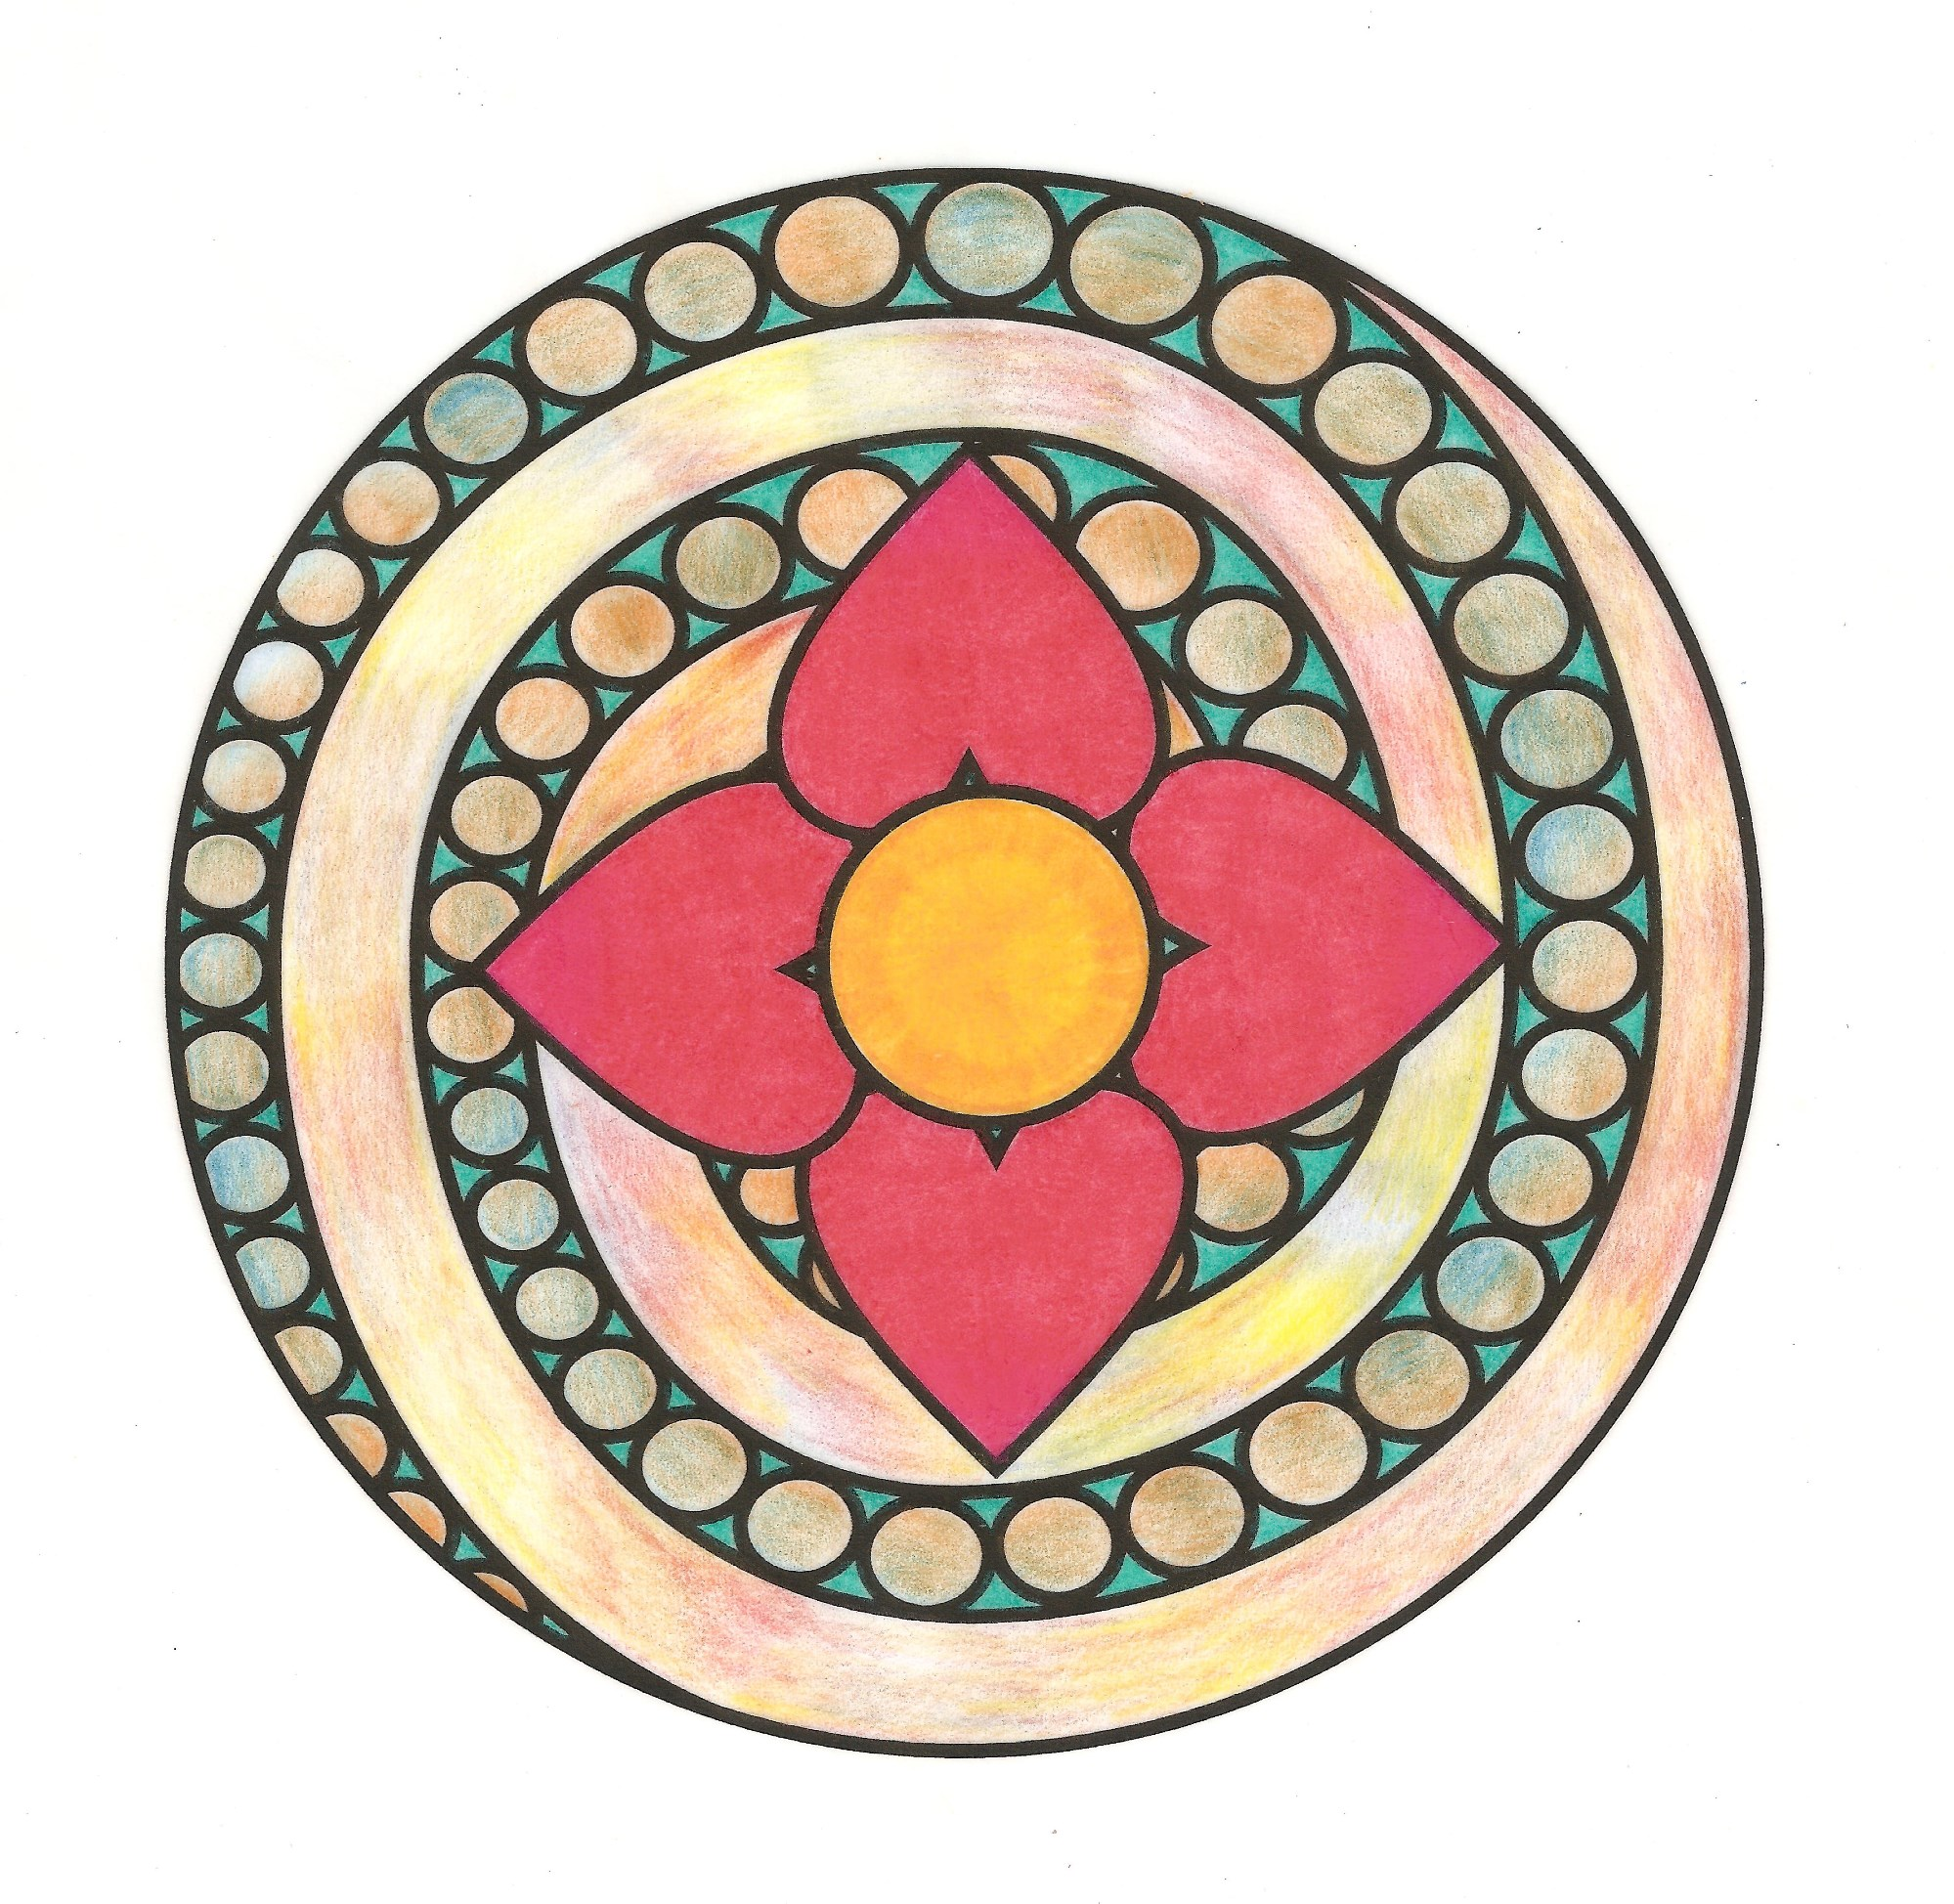 Heart of the Flower Mandala Colored